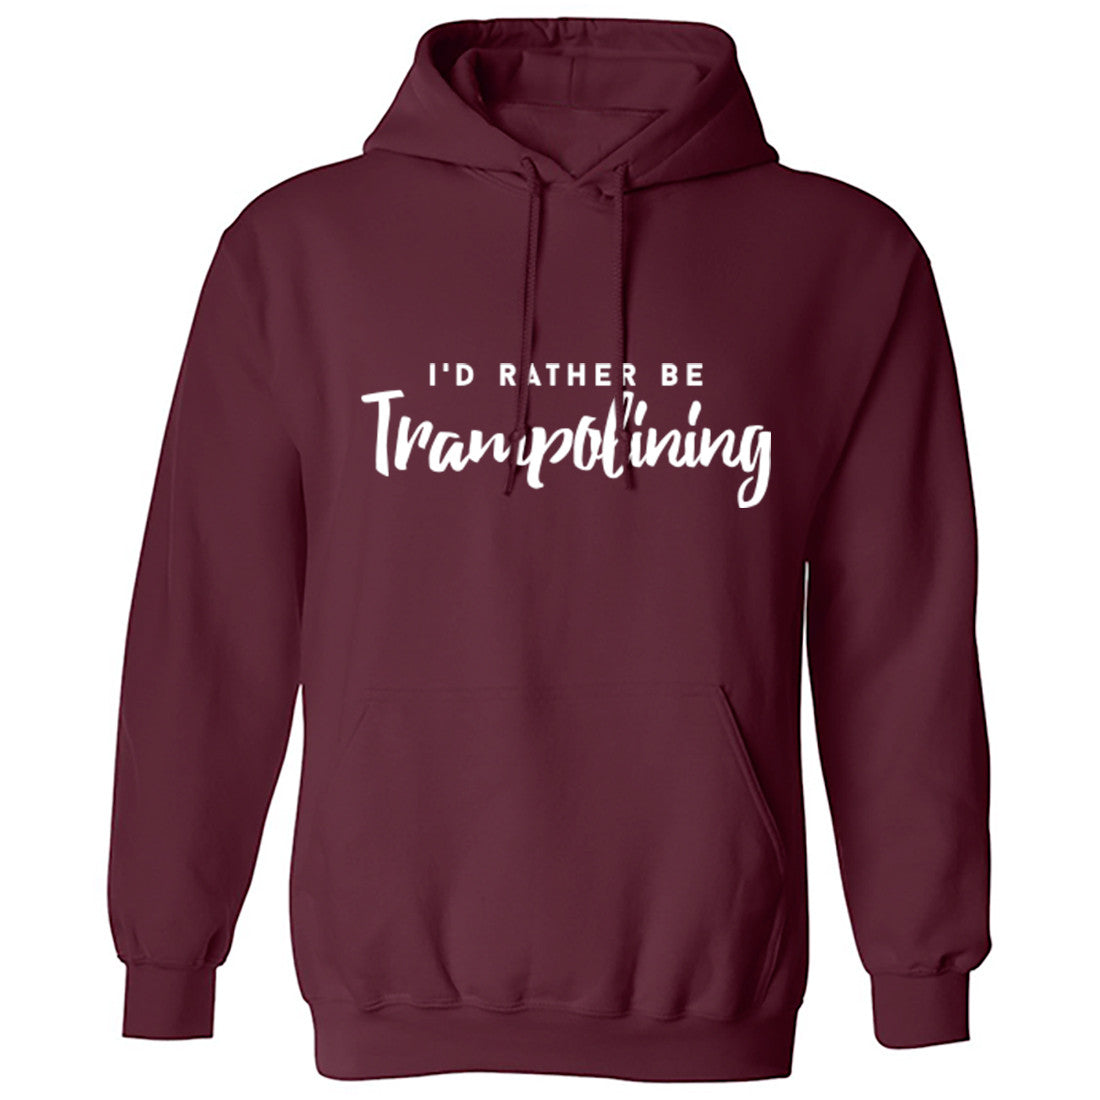 I'd Rather Be Trampolining Unisex Hoodie K0219 - Illustrated Identity Ltd.